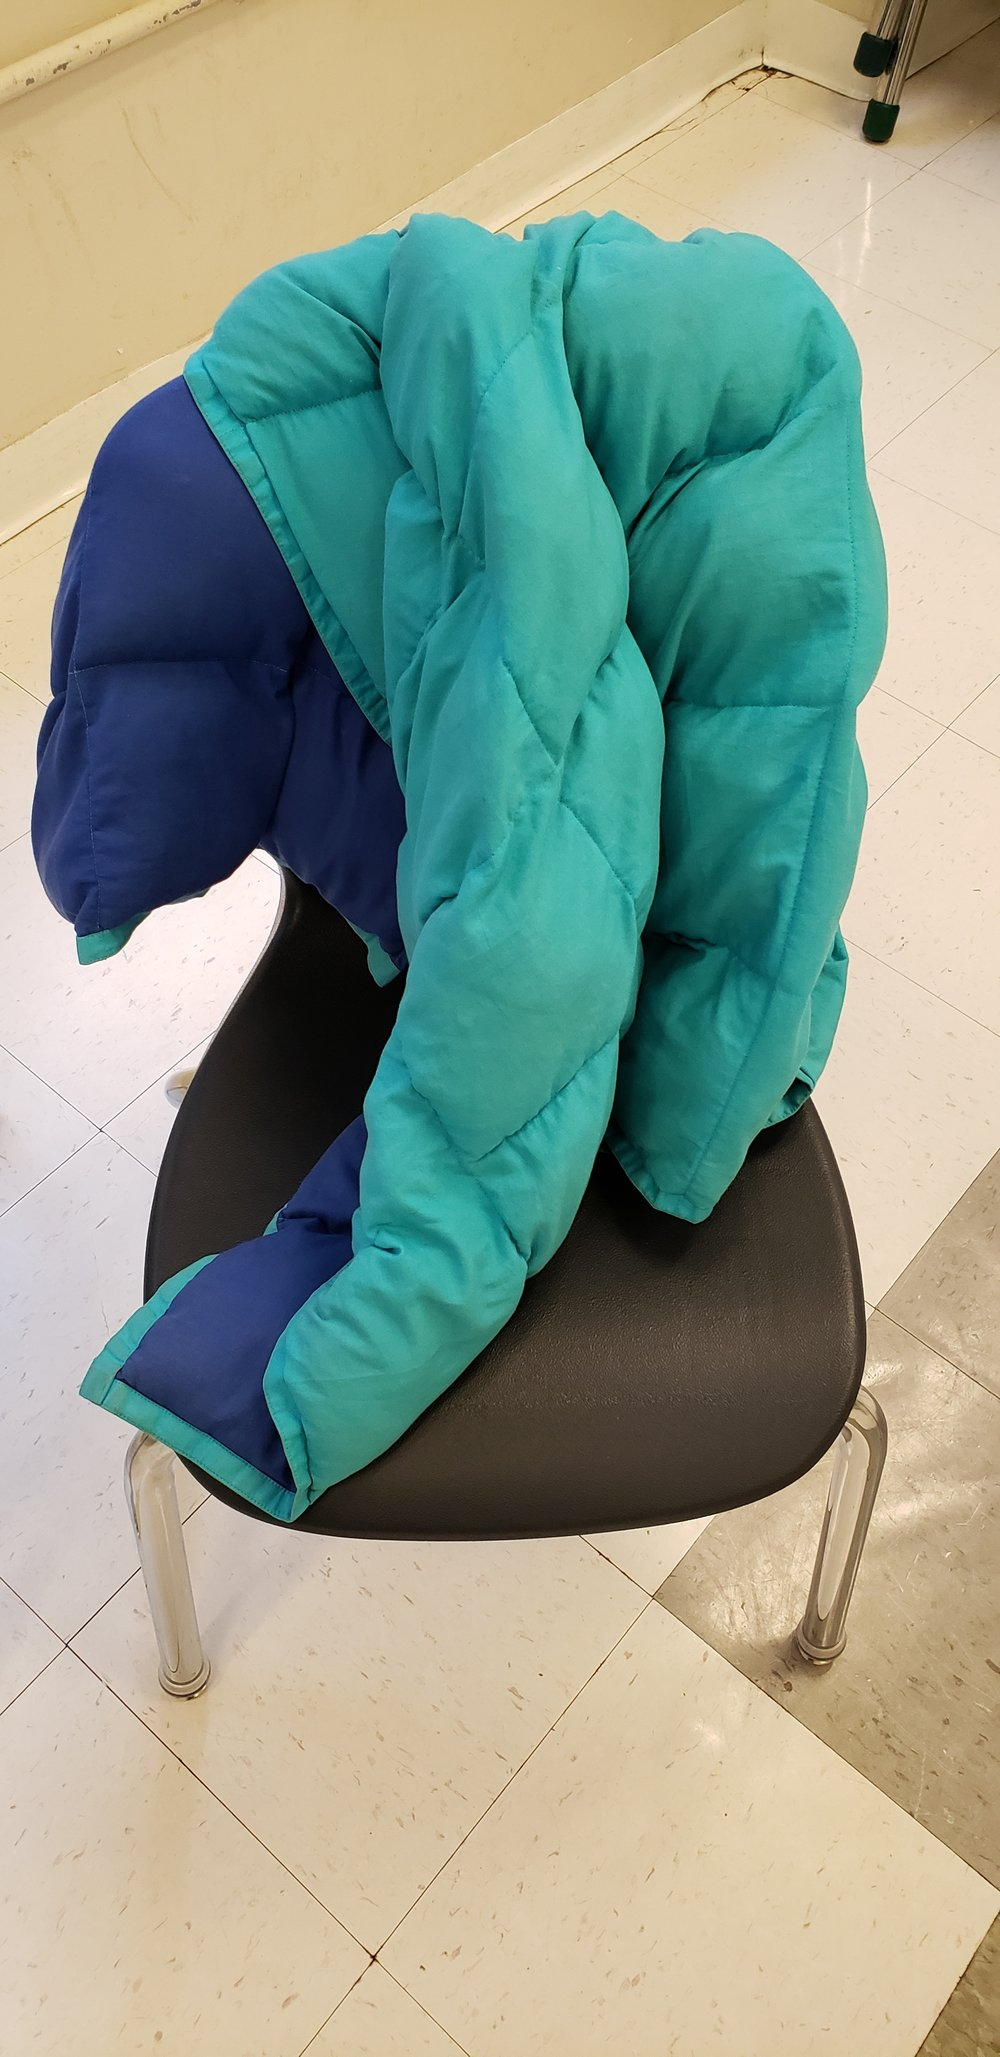 Teal and dark blue weighted blanket sitting on top of a black chair in a tiled classroom.